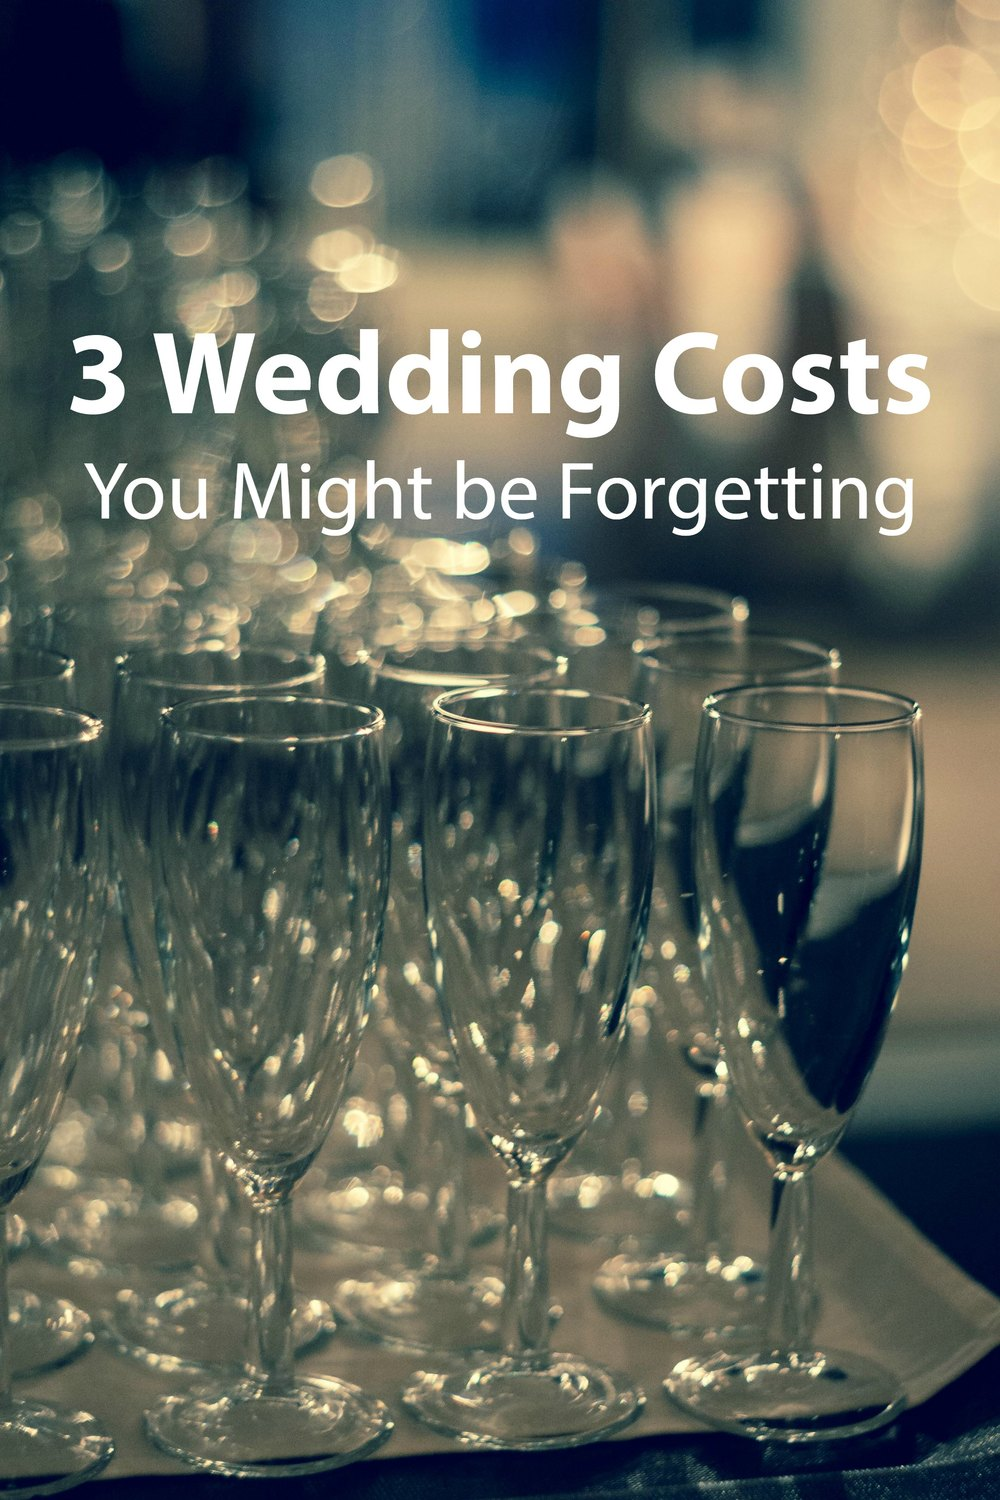 3 Wedding Costs You Might be Forgetting - Paper Swallow Events #wedding #budget